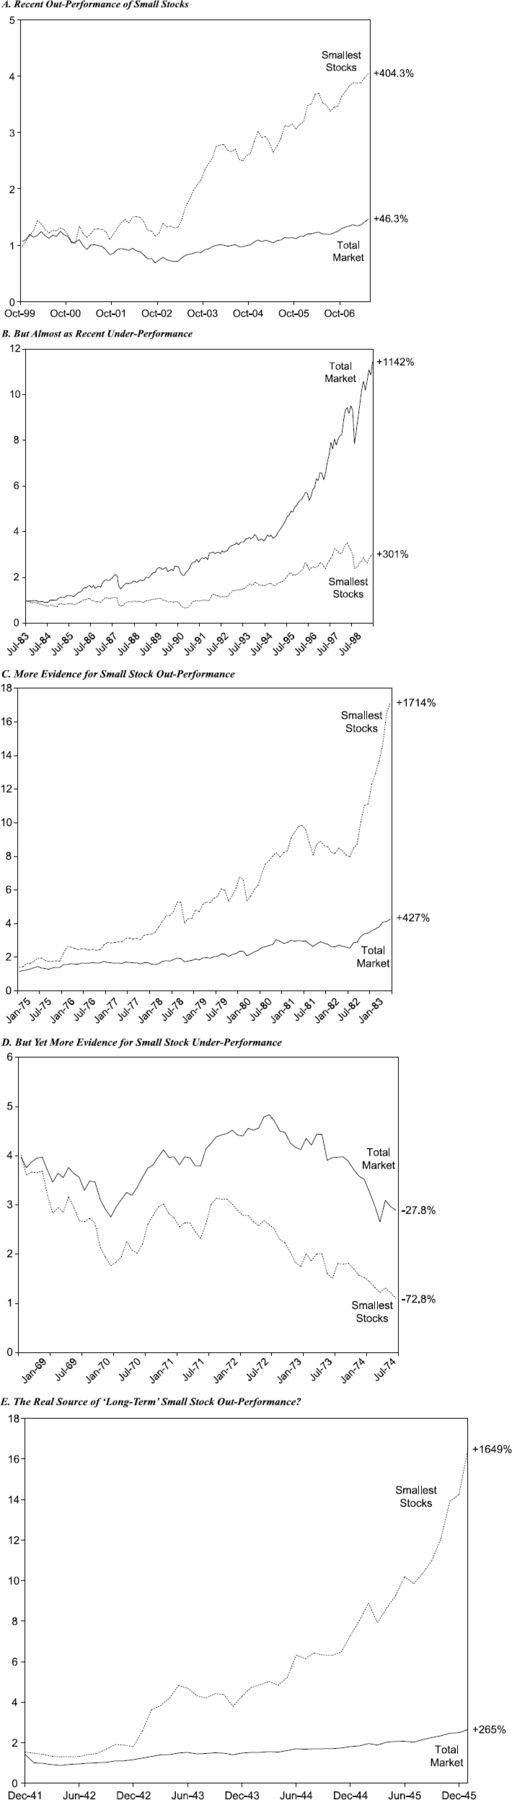 The Chimera of Small Stock Outperformance: Market Anomaly or